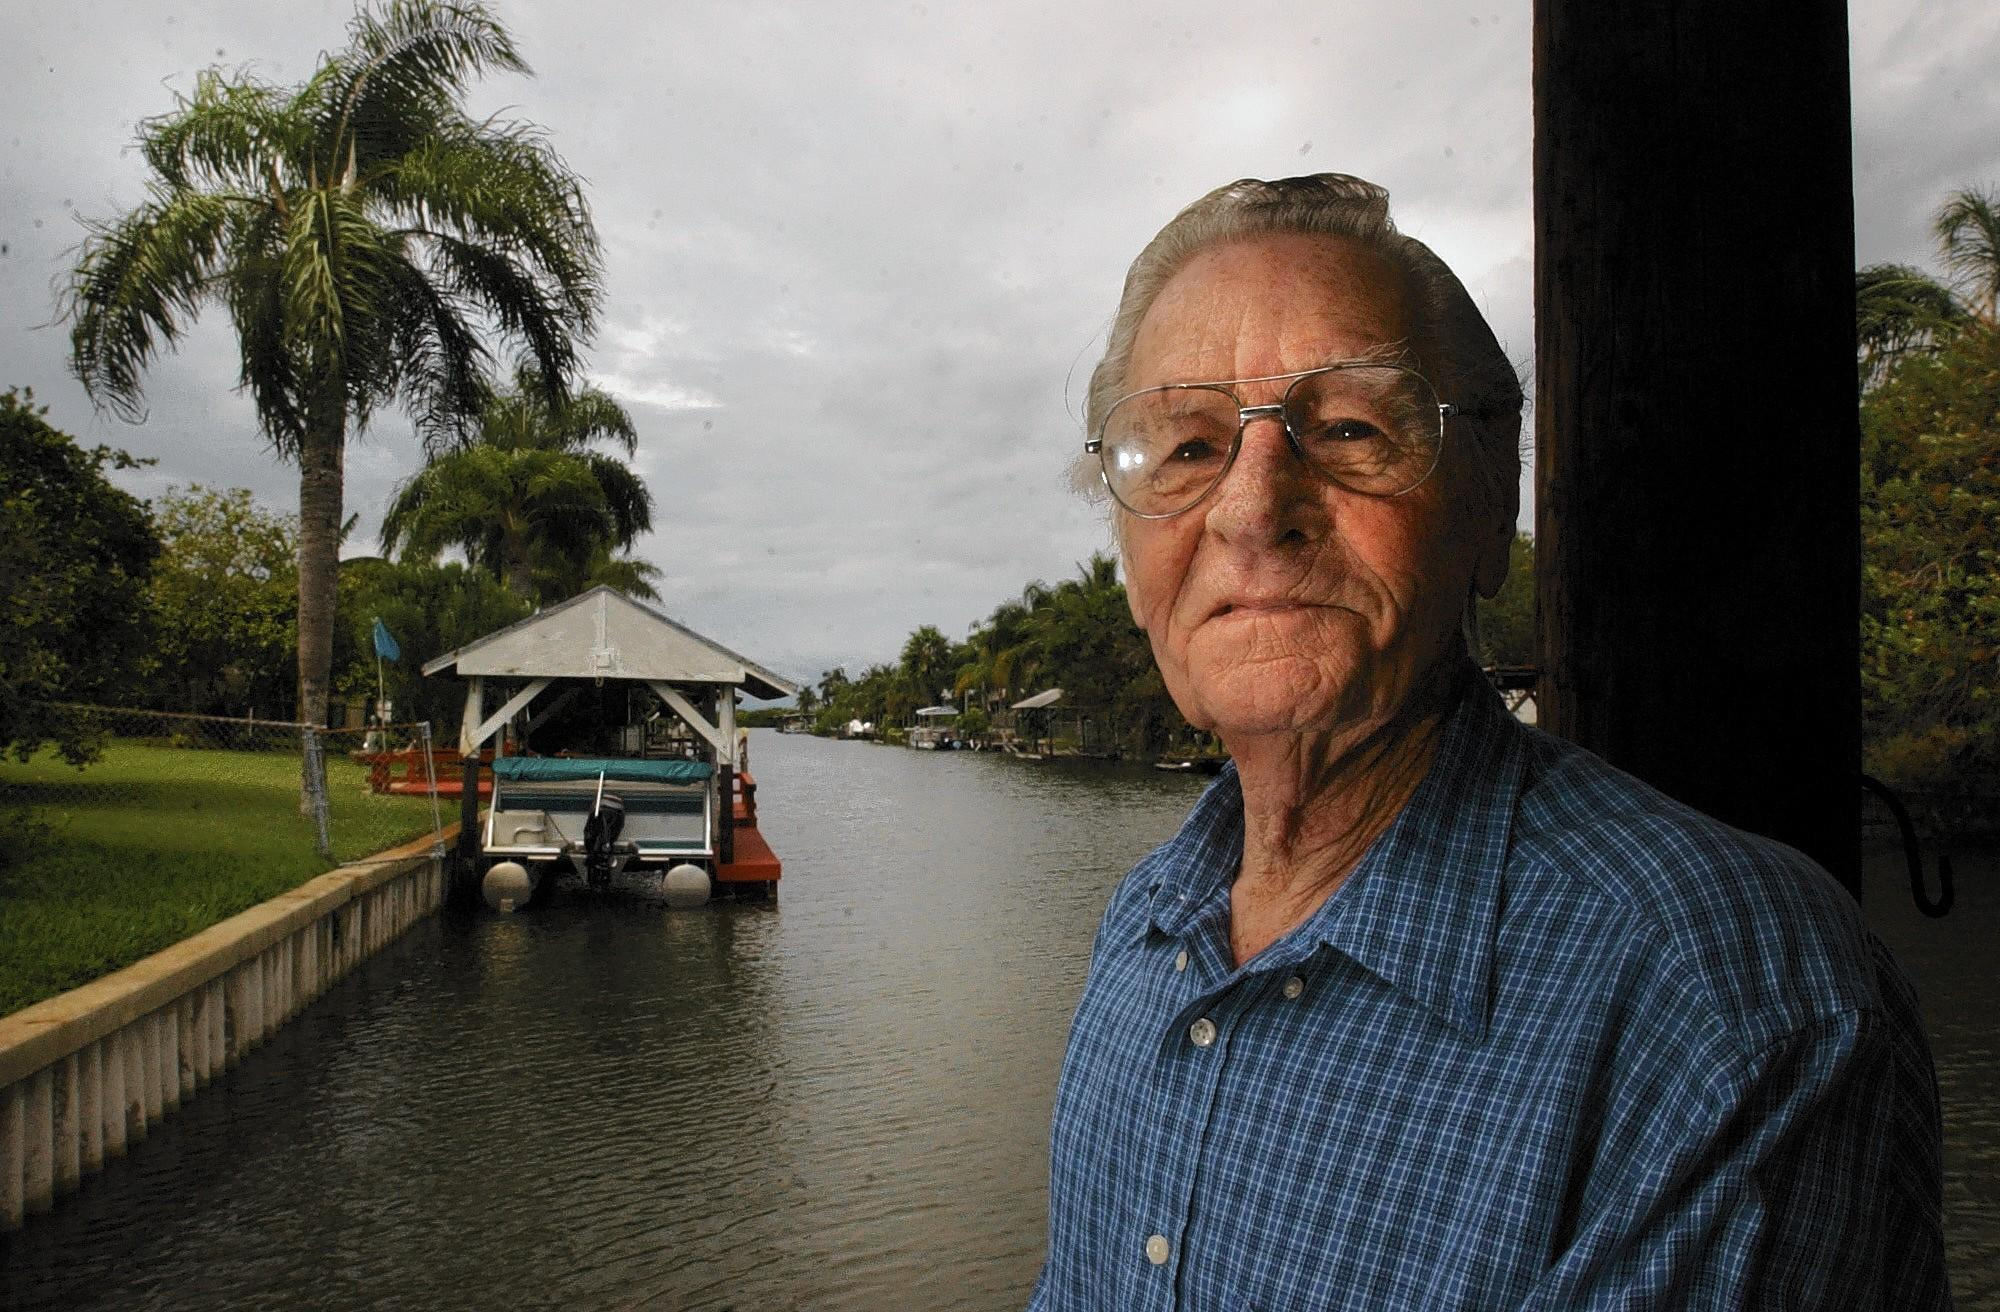 Patrick Smith, author of numerous books on fictional Florida history, at his home. Shown here in front of the canal behind his home on Merritt Island.